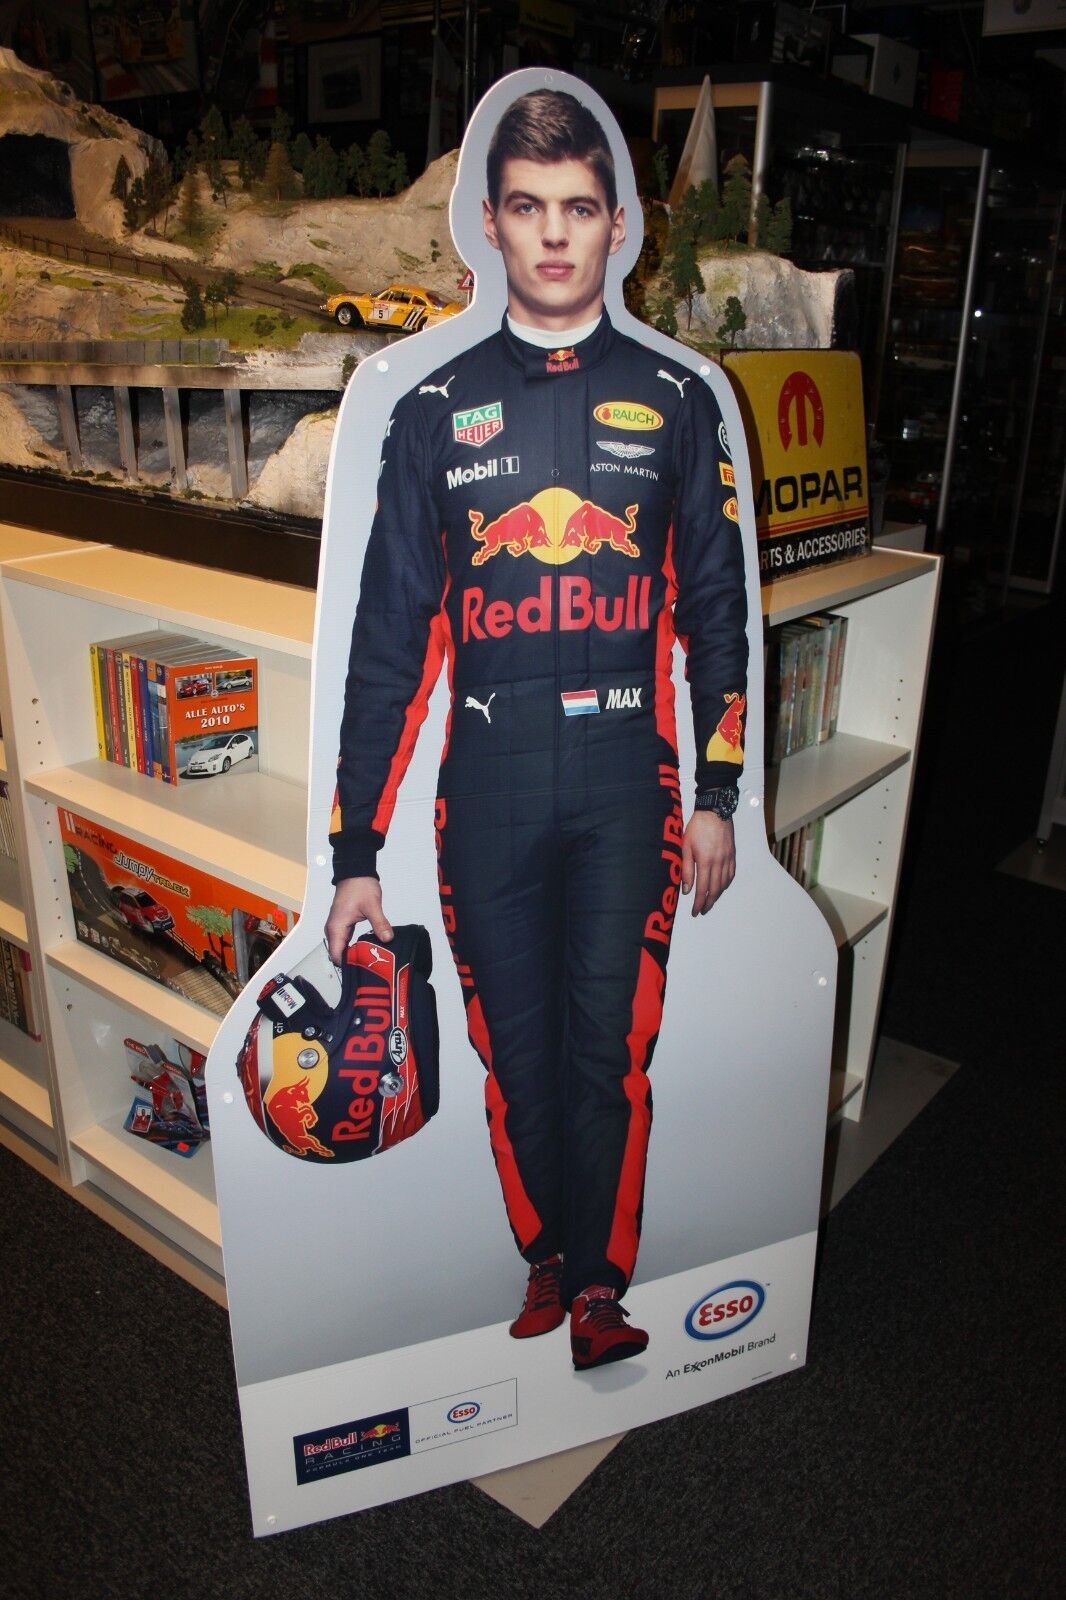 Cardboard Figurine Max Verstappen rosso Bull Racing  height 164 cm  type 2